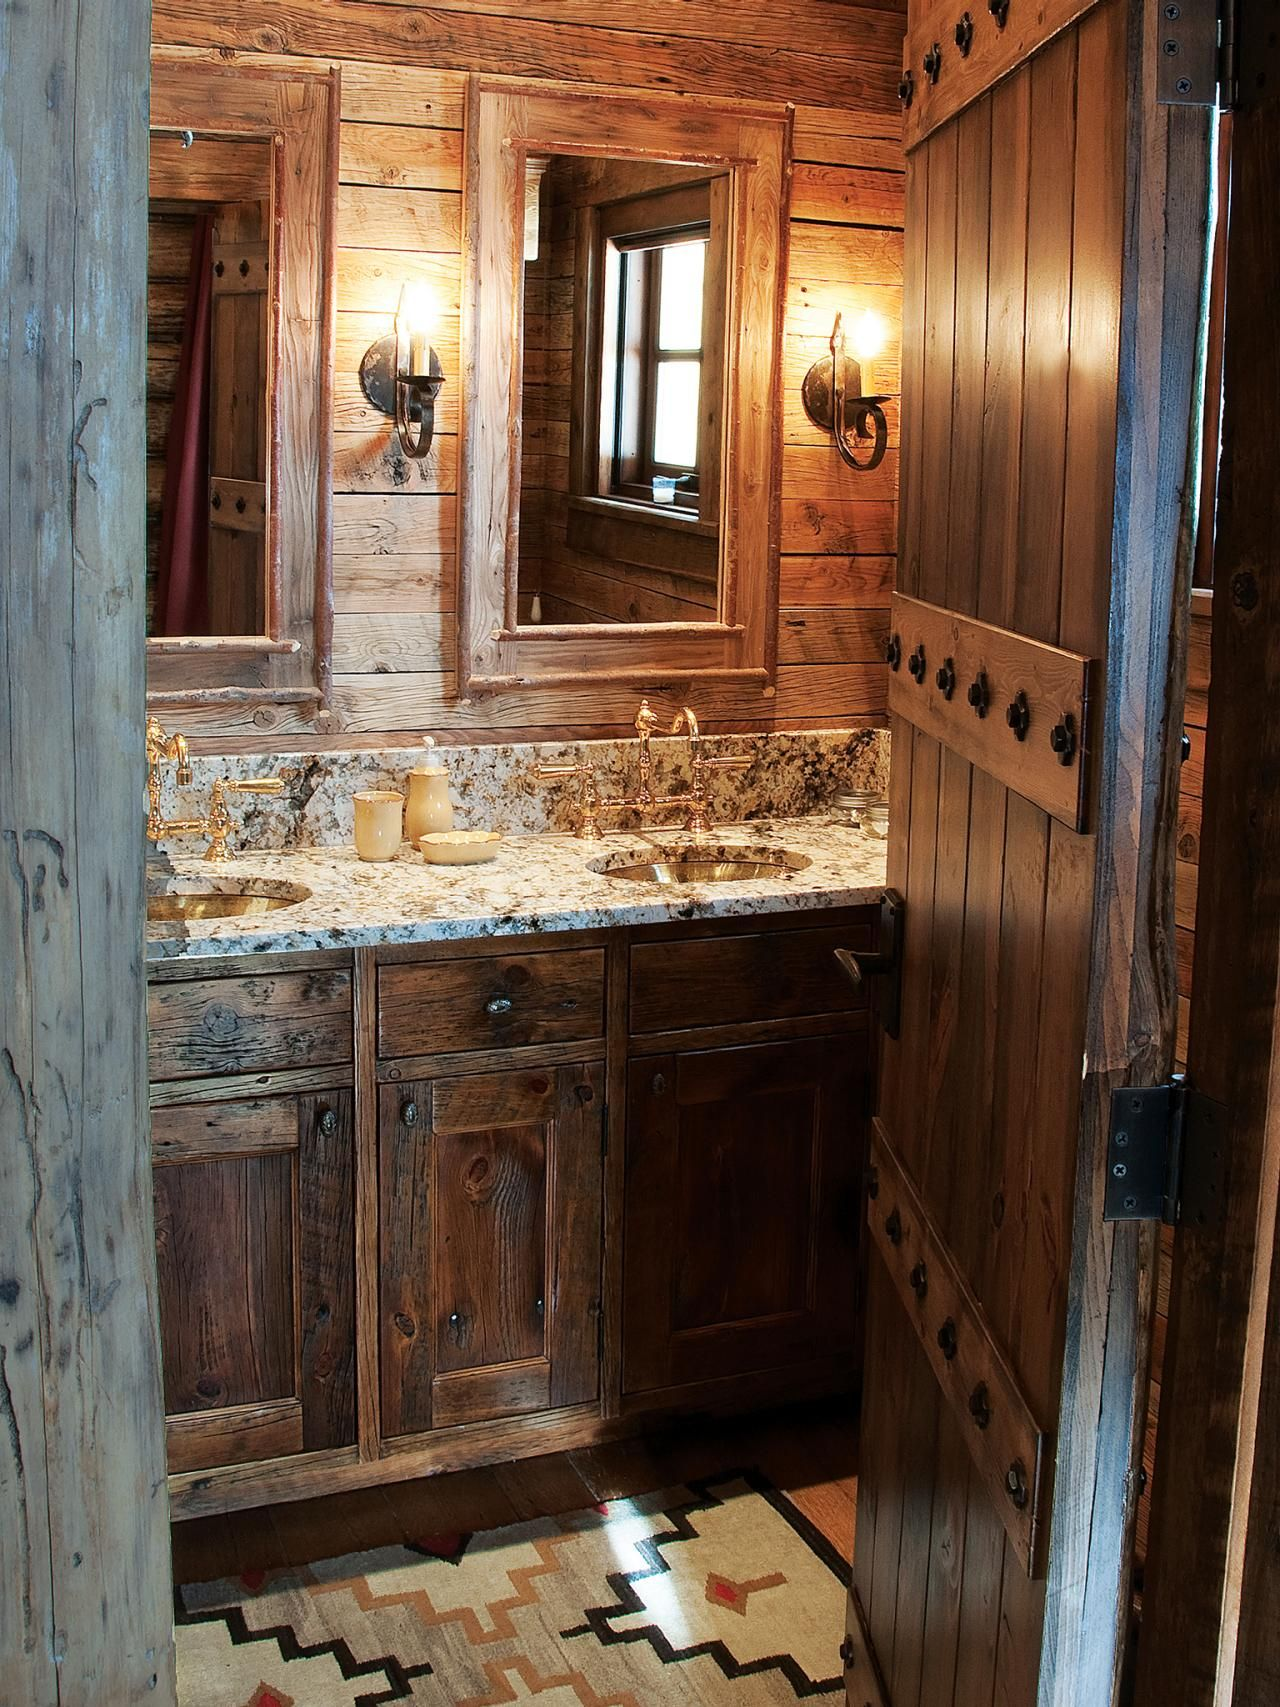 Add Glamour With Small Vintage Bathroom Ideas | Ideas for the House on small rustic bathrooms, southwestern rustic bathrooms, shabby chic rustic bathrooms, tuscany inspired bathrooms, tuscan bathroom art, trim beadboard in bathrooms, old world rustic bathrooms, tuscan-themed bathrooms, coastal rustic bathrooms, modern rustic bathrooms, tuscan-inspired bathrooms, vintage rustic bathrooms, luxury rustic bathrooms, country rustic bathrooms, contemporary rustic bathrooms, tuscan bathroom tile designs, mediterranean rustic bathrooms, natural rustic bathrooms, white rustic bathrooms, simple rustic bathrooms,